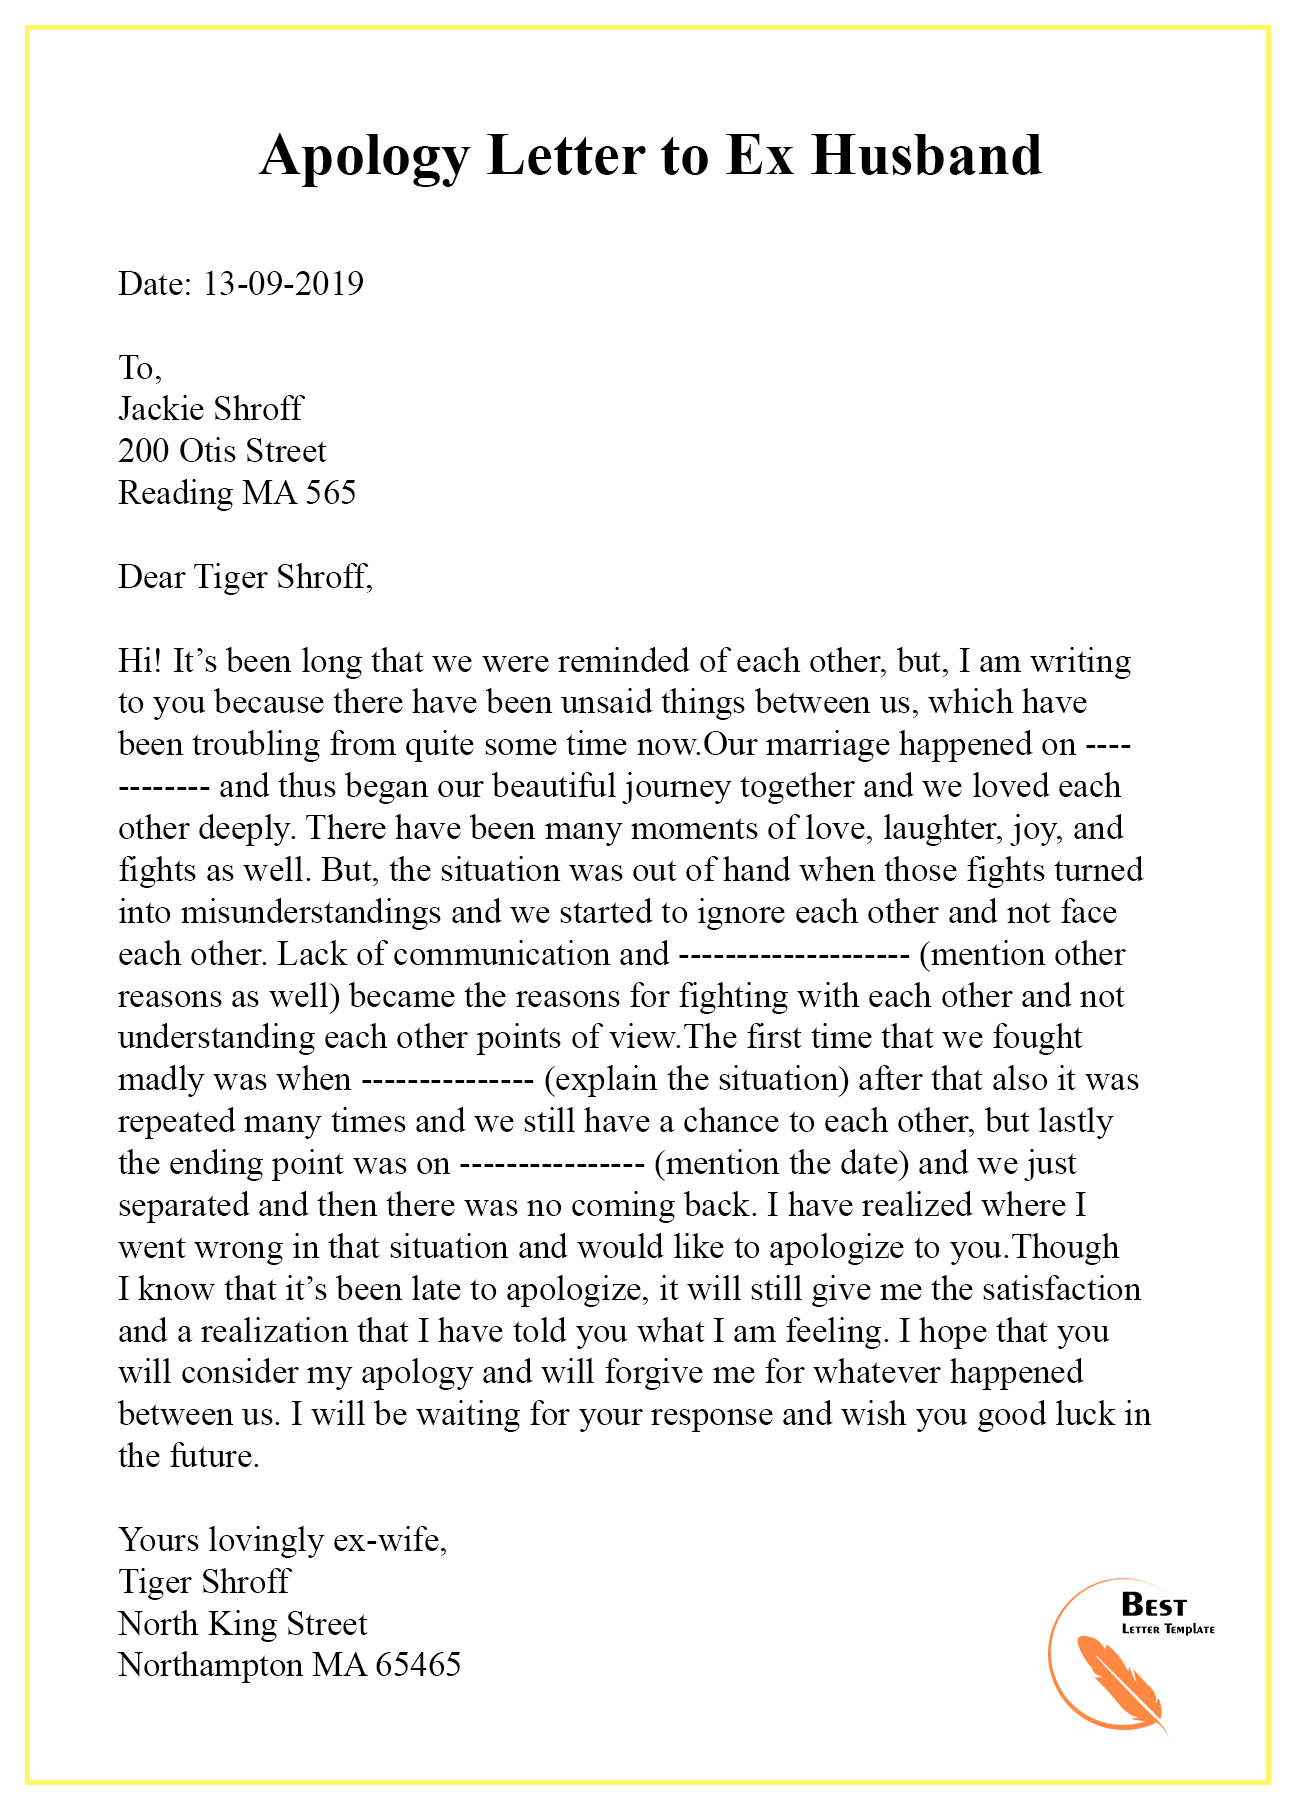 Apology Letter Template to Ex - Sample & Examples